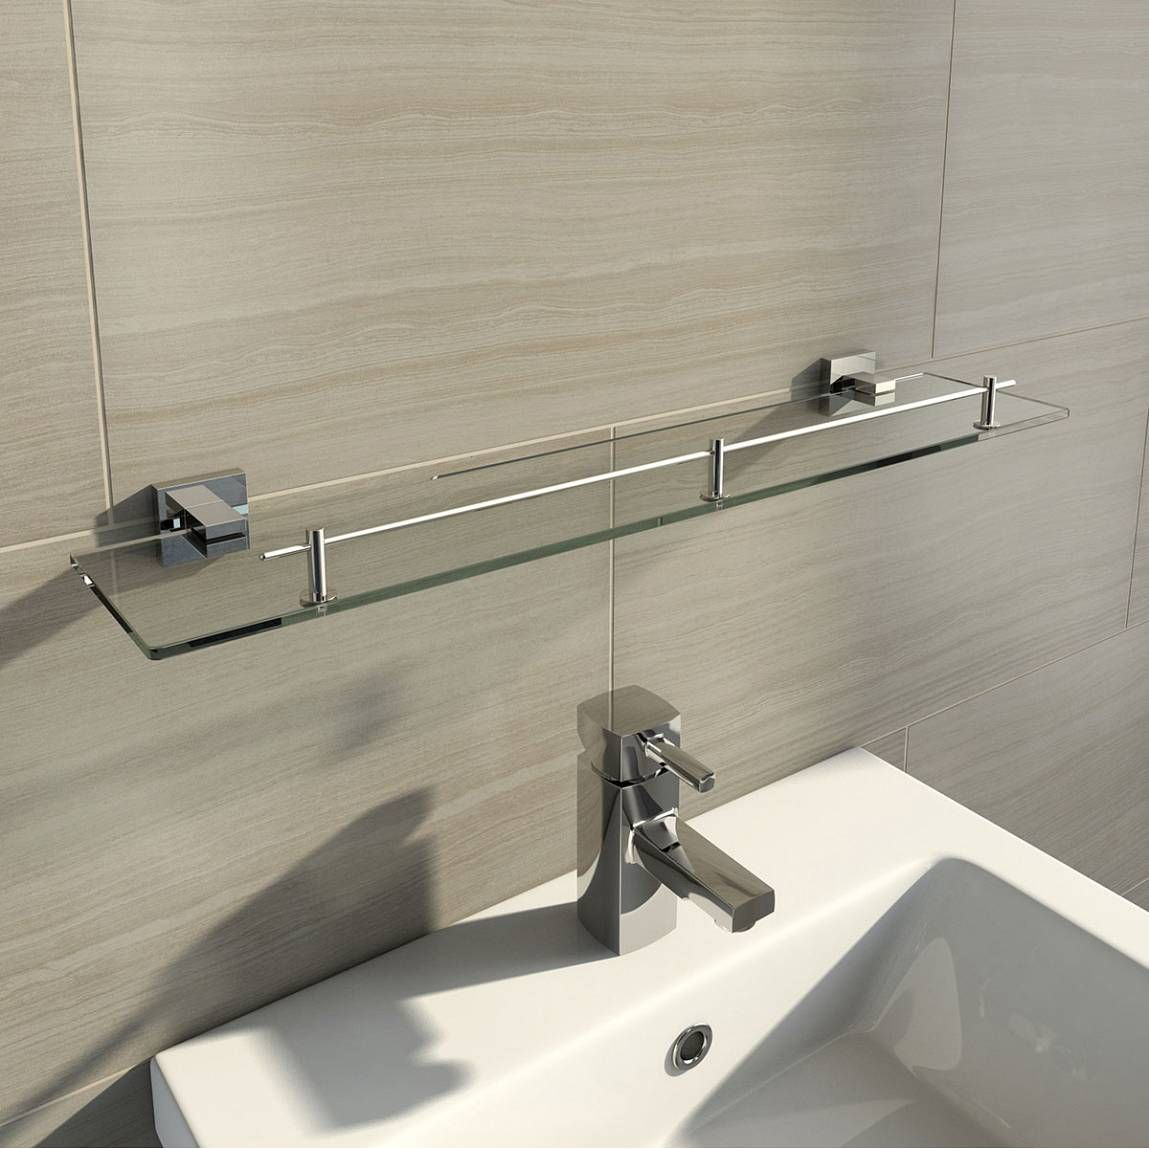 Bathroom Accessories Victoria Plumb cubik glass shelf - victoria plumb | bathrooms | pinterest | glass